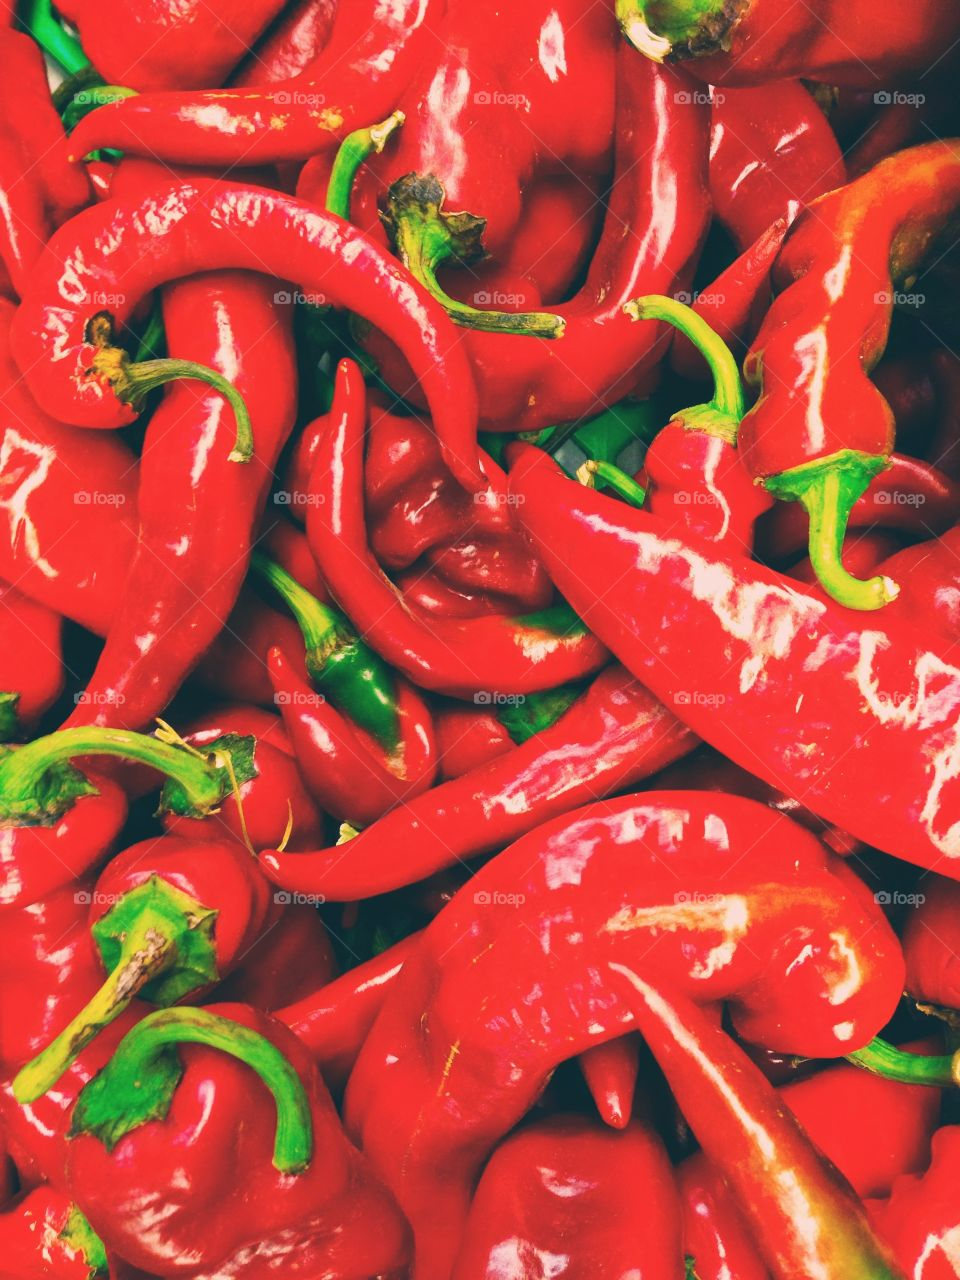 Peppers! . Red and spicy!